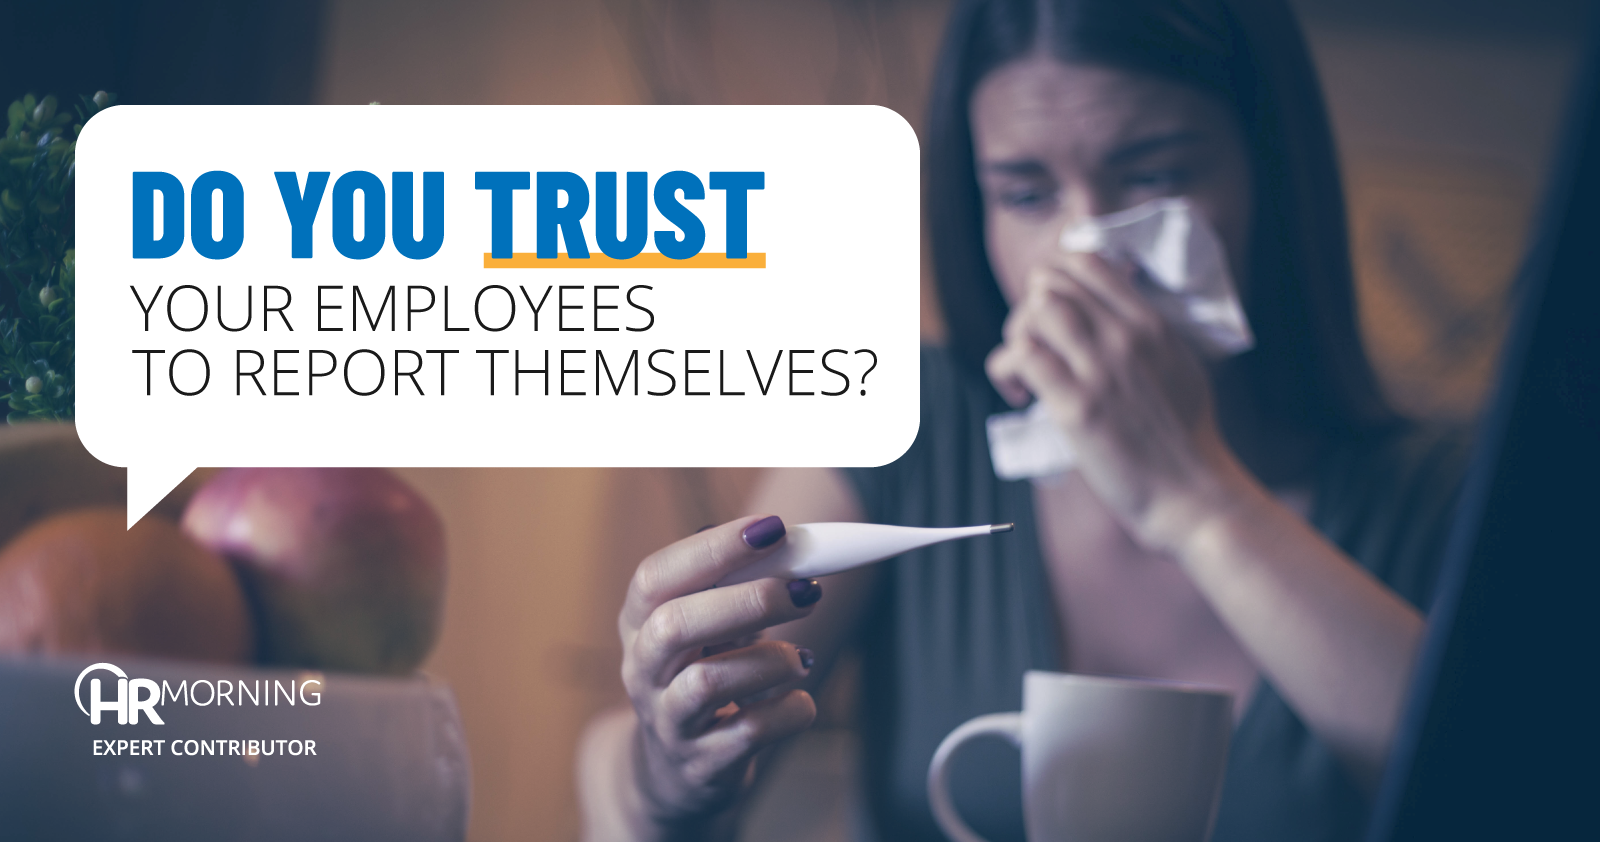 Do you trust your employees to report themselves